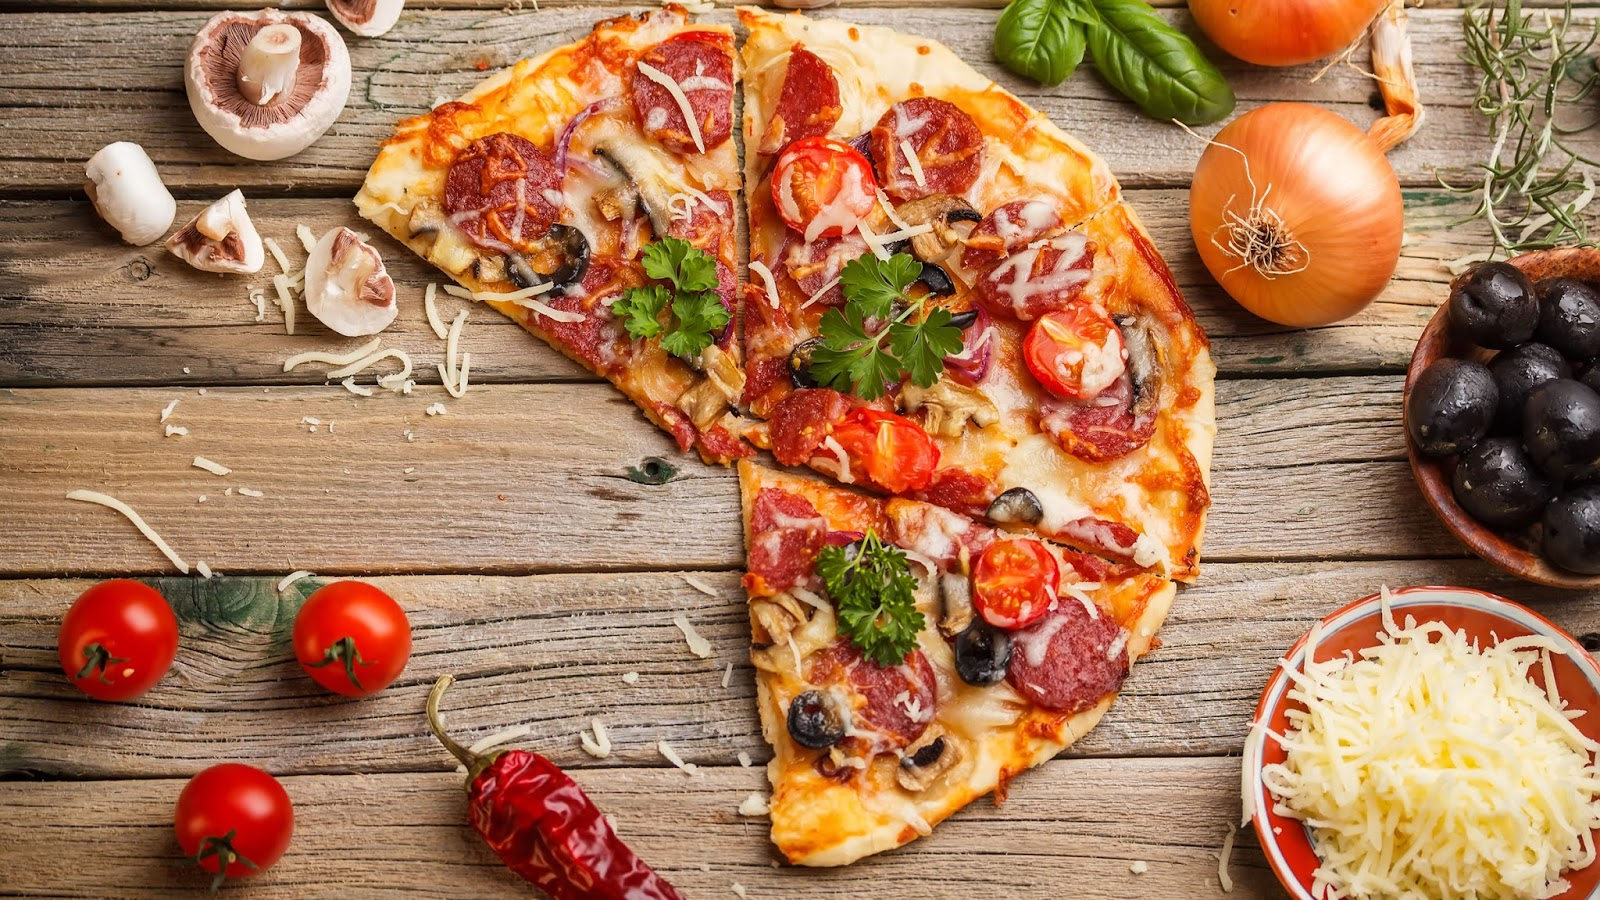 7 Wood-Fired Pizza Places Around Klang Valley That Deliver During MCO